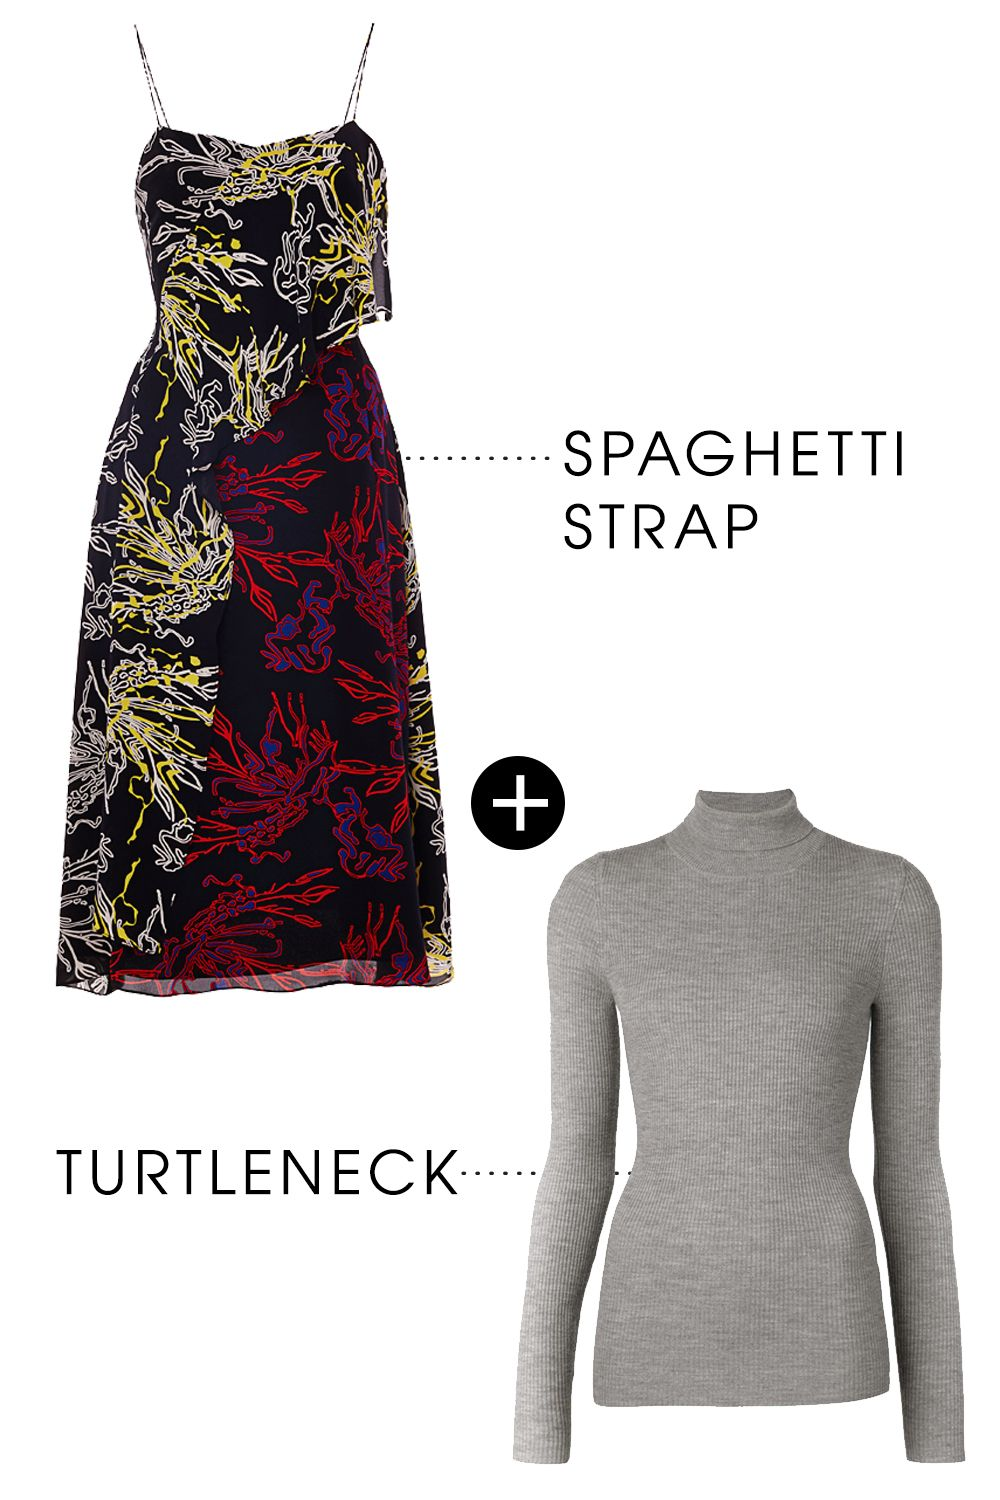 """<p>You can never have too many turtlenecks in your closet. On their own, they're great basics. Worn under a spaghetti strap dress (even the most colorful!) and they become the perfect solution to all your transitional dressing woes. </p><p>Tanya Taylor Bella Dress, $650&#x3B; <a href=""""https://tanyataylor.com/shop/reef-print-asymmetrical-paneled-silk-dress?taxon_id=26"""">tanyataylor.com</a></p><p>Barbara Bui Ribbed Turtleneck Sweater, $395&#x3B; <a href=""""http://rstyle.me/n/bd3a35bc6jf"""">farfetch.com</a></p>"""